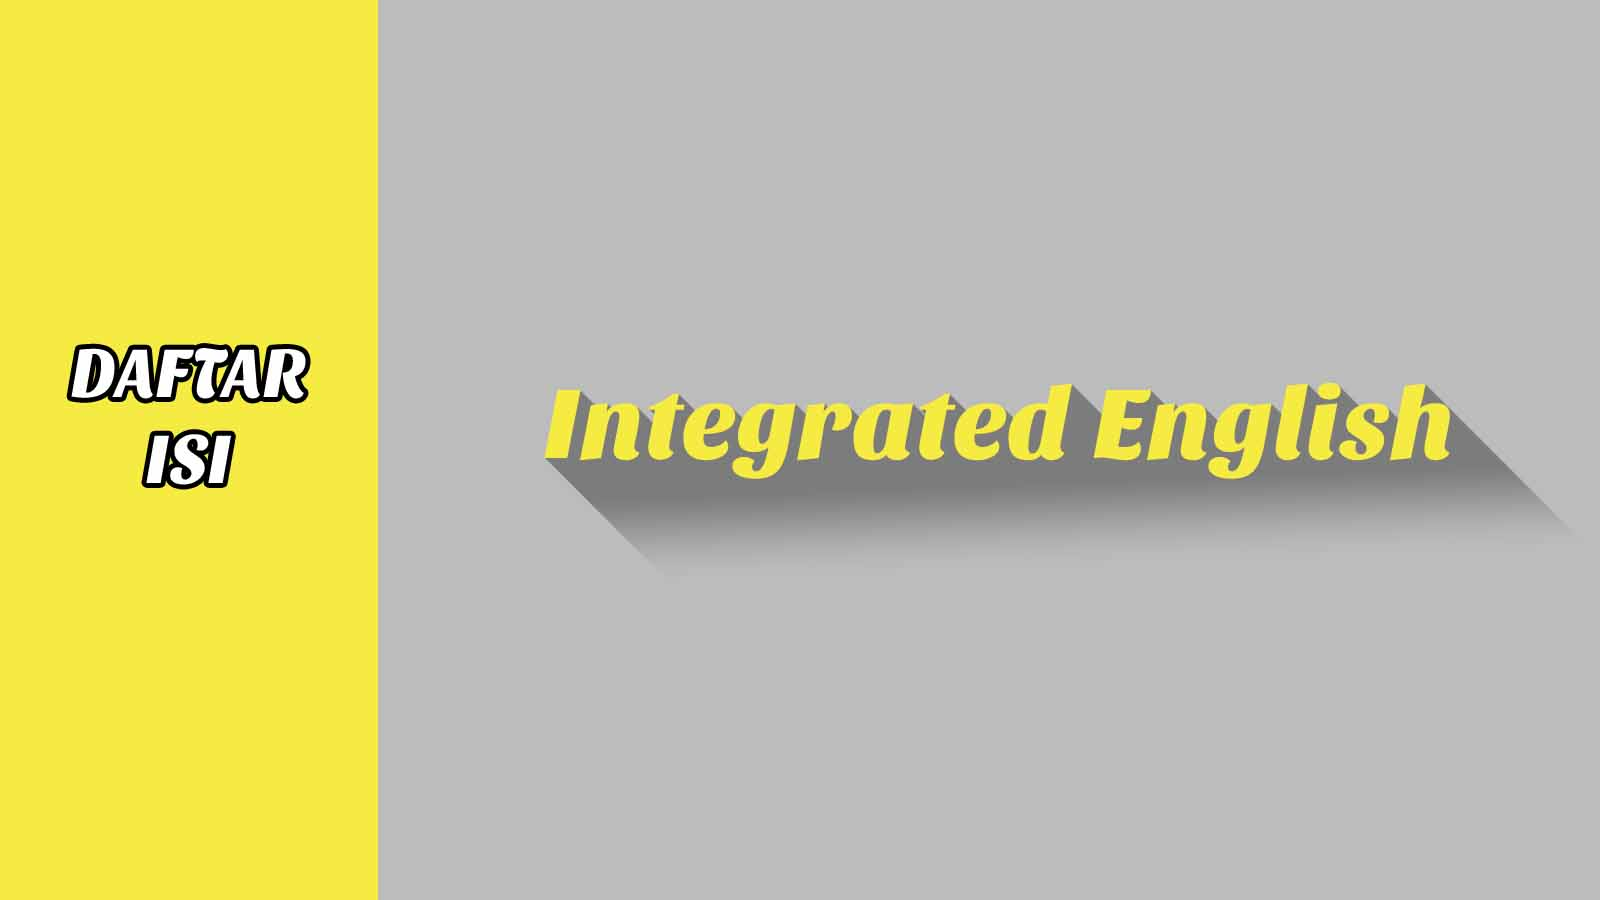 Daftar Isi Integrated English